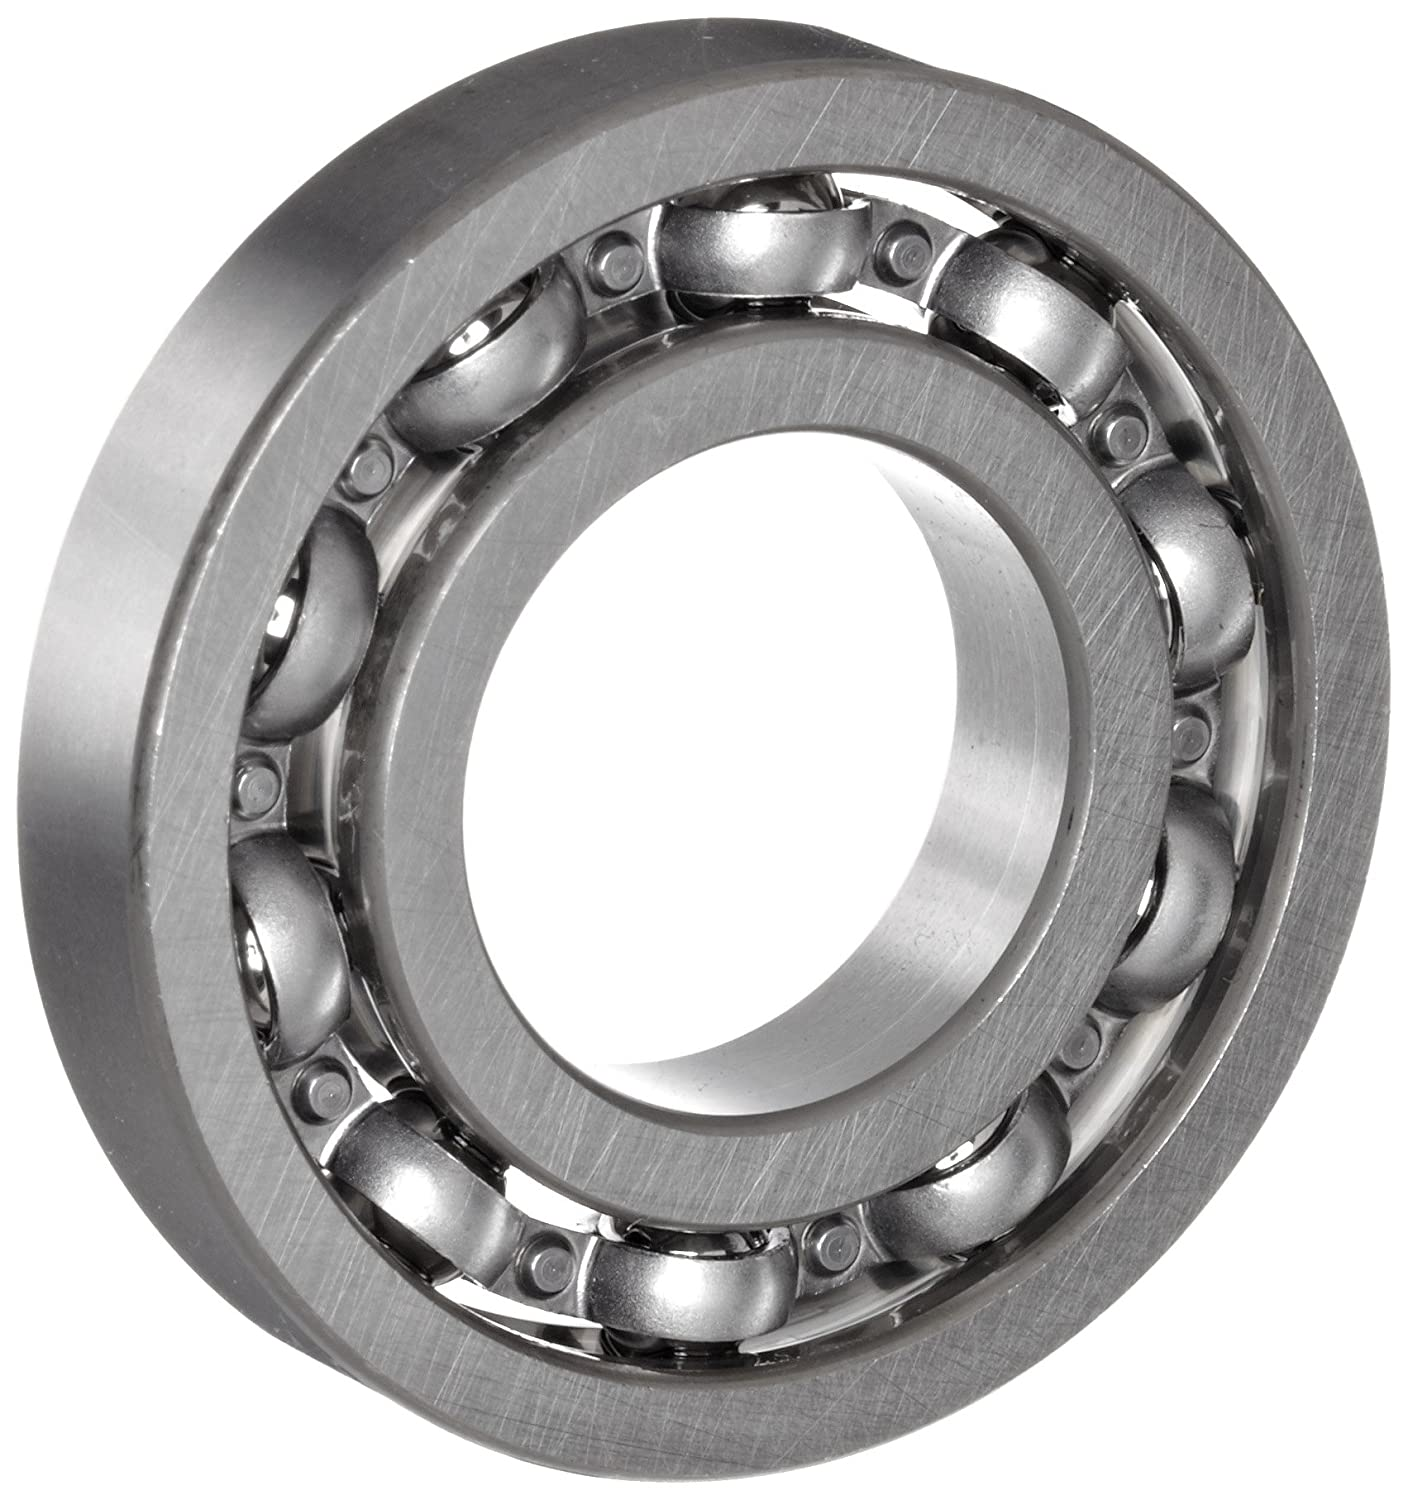 NSK 16018 Deep Groove Ball Bearing, Single Row, Open, Pressed Steel Cage, Normal Clearance, Metric, 90mm Bore, 140mm OD, 16mm Width, 4800rpm Maximum Rotational Speed, 39500N Static Load Capacity, 415000N Dynamic Load Capacity крем для рук thalgo cold cream marine deeply nourishing hand cream объем 50 мл